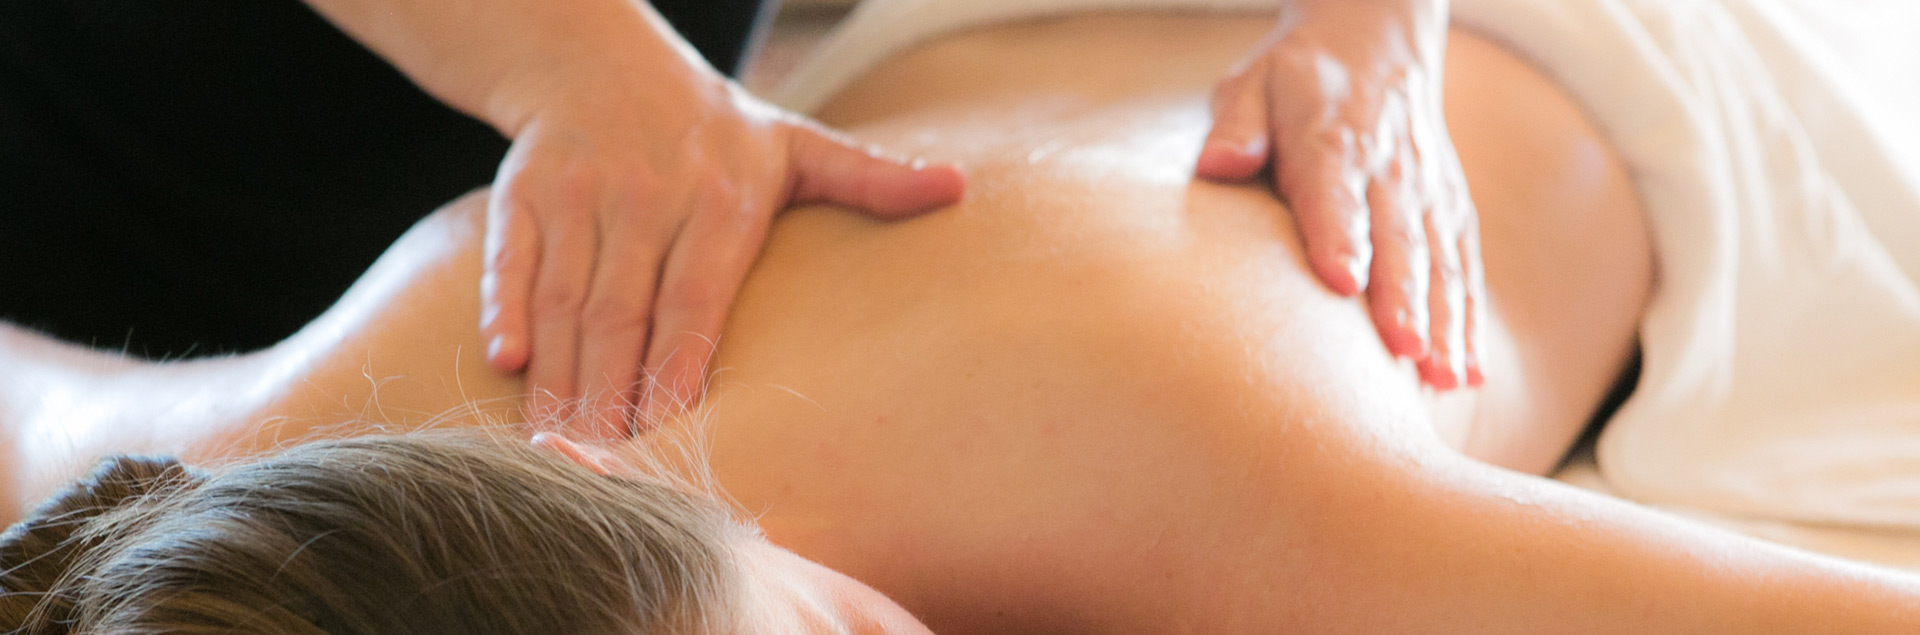 Spa in Soldeu with beauty treatments: facials & corporals